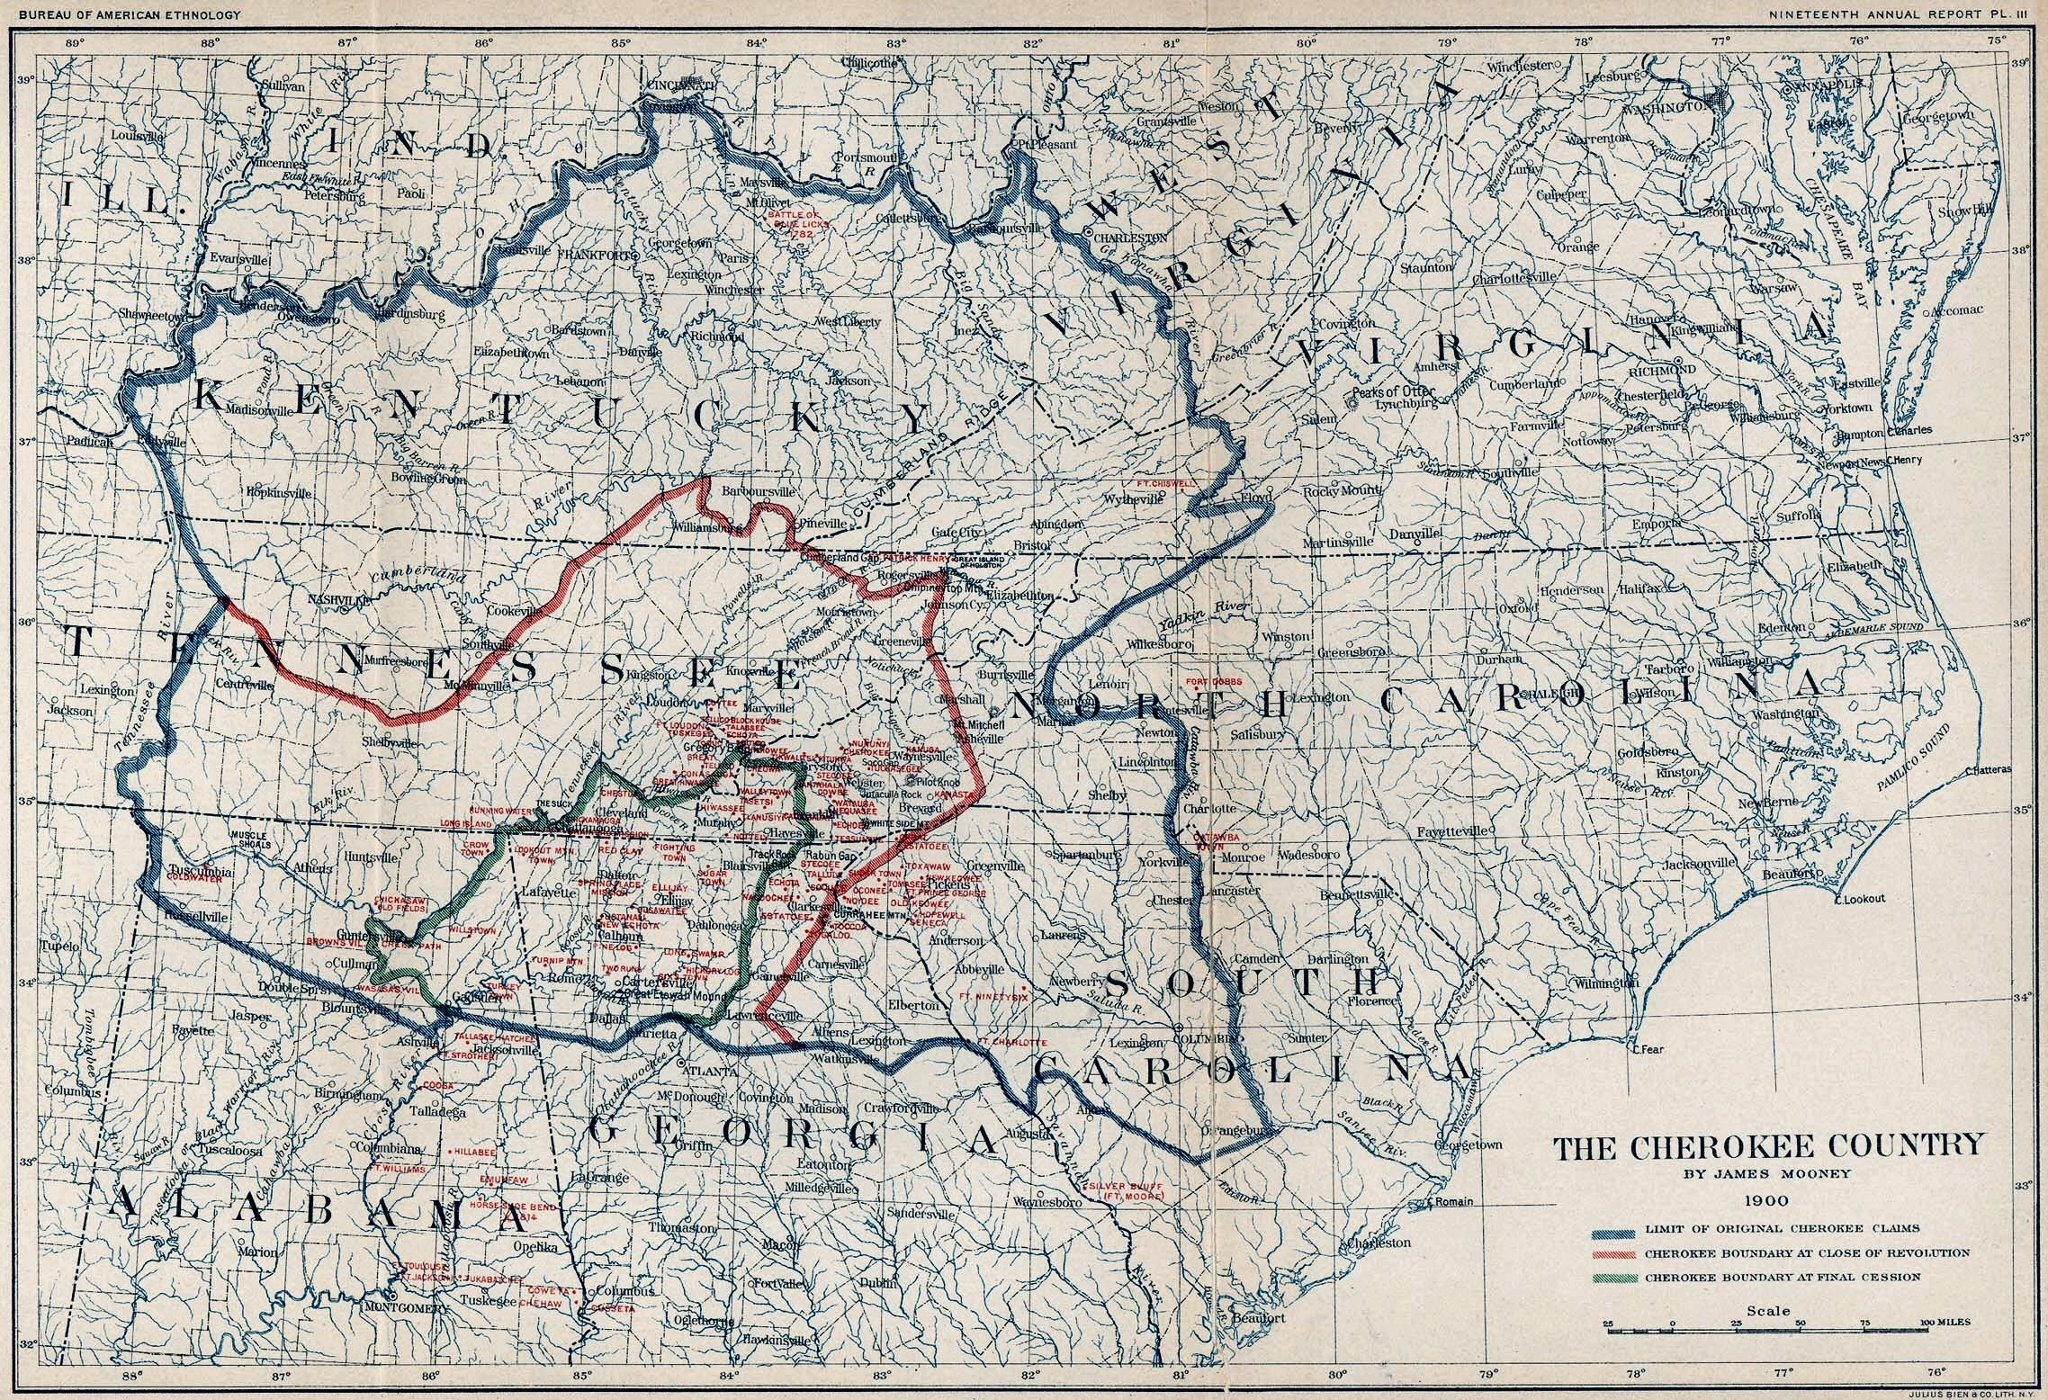 1900 Map of Cherokee Country - Maps of Cherokee Land Cherokee Map on